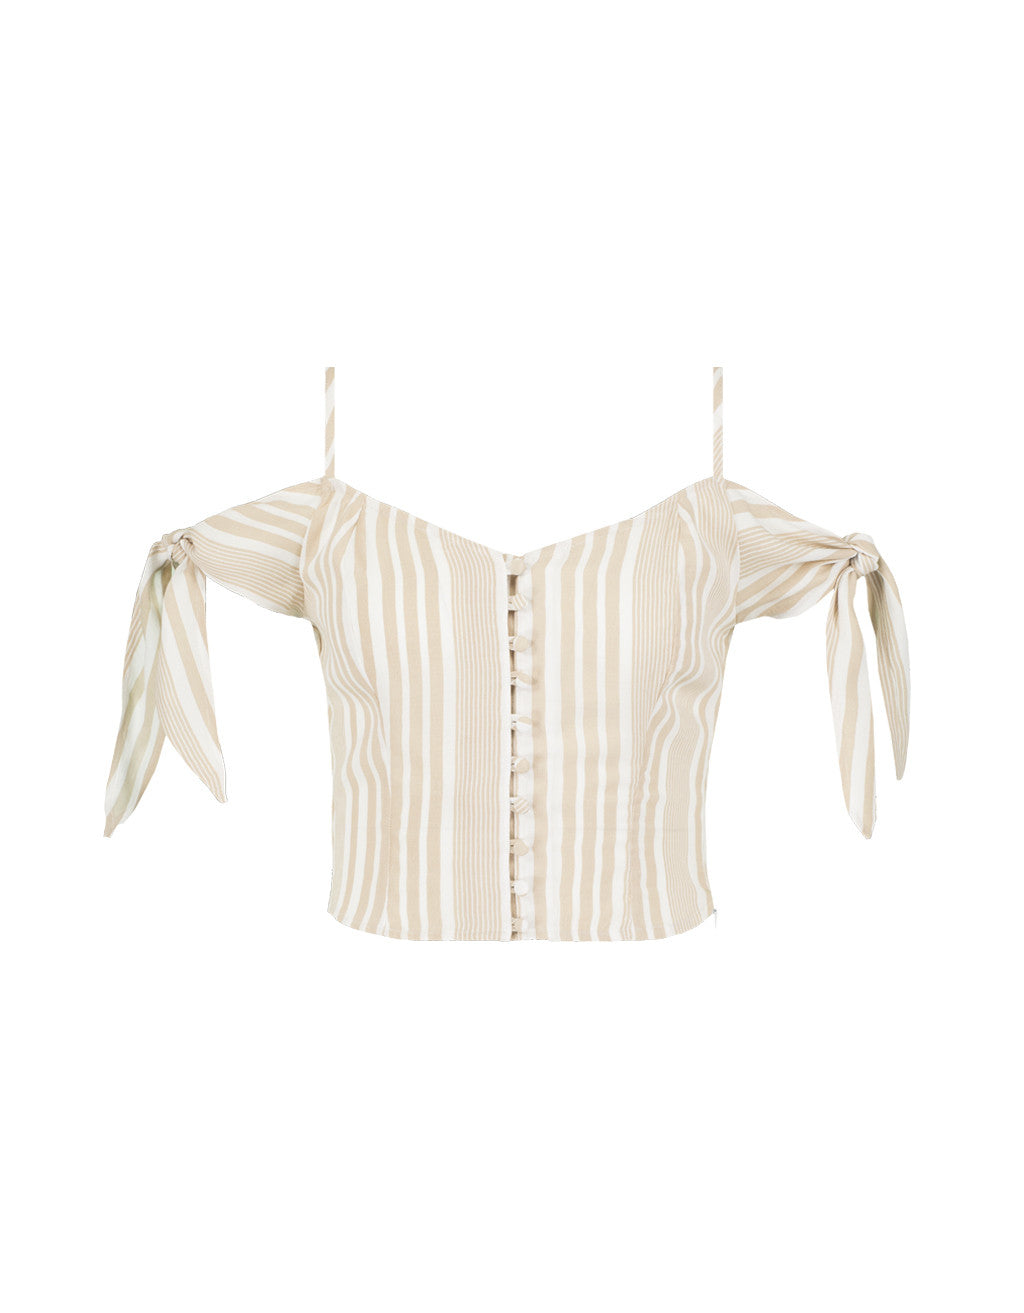 Button Front Crop Top | Indian Tan2-Off Whit